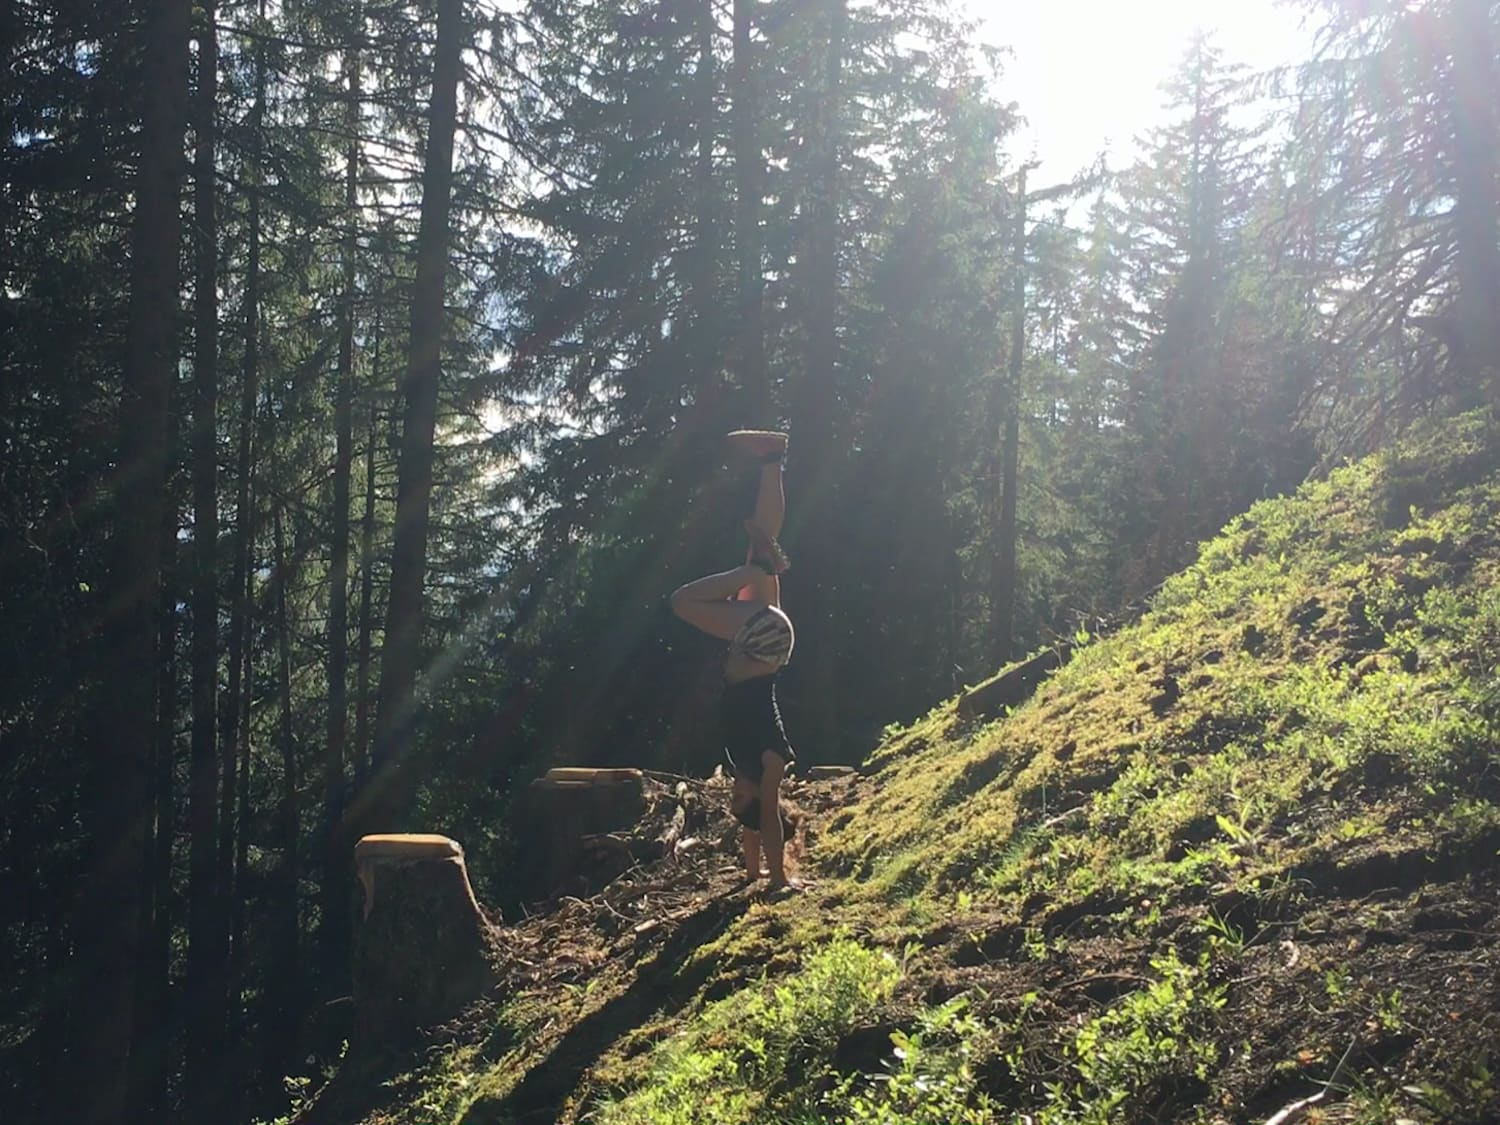 Handstand in the woods